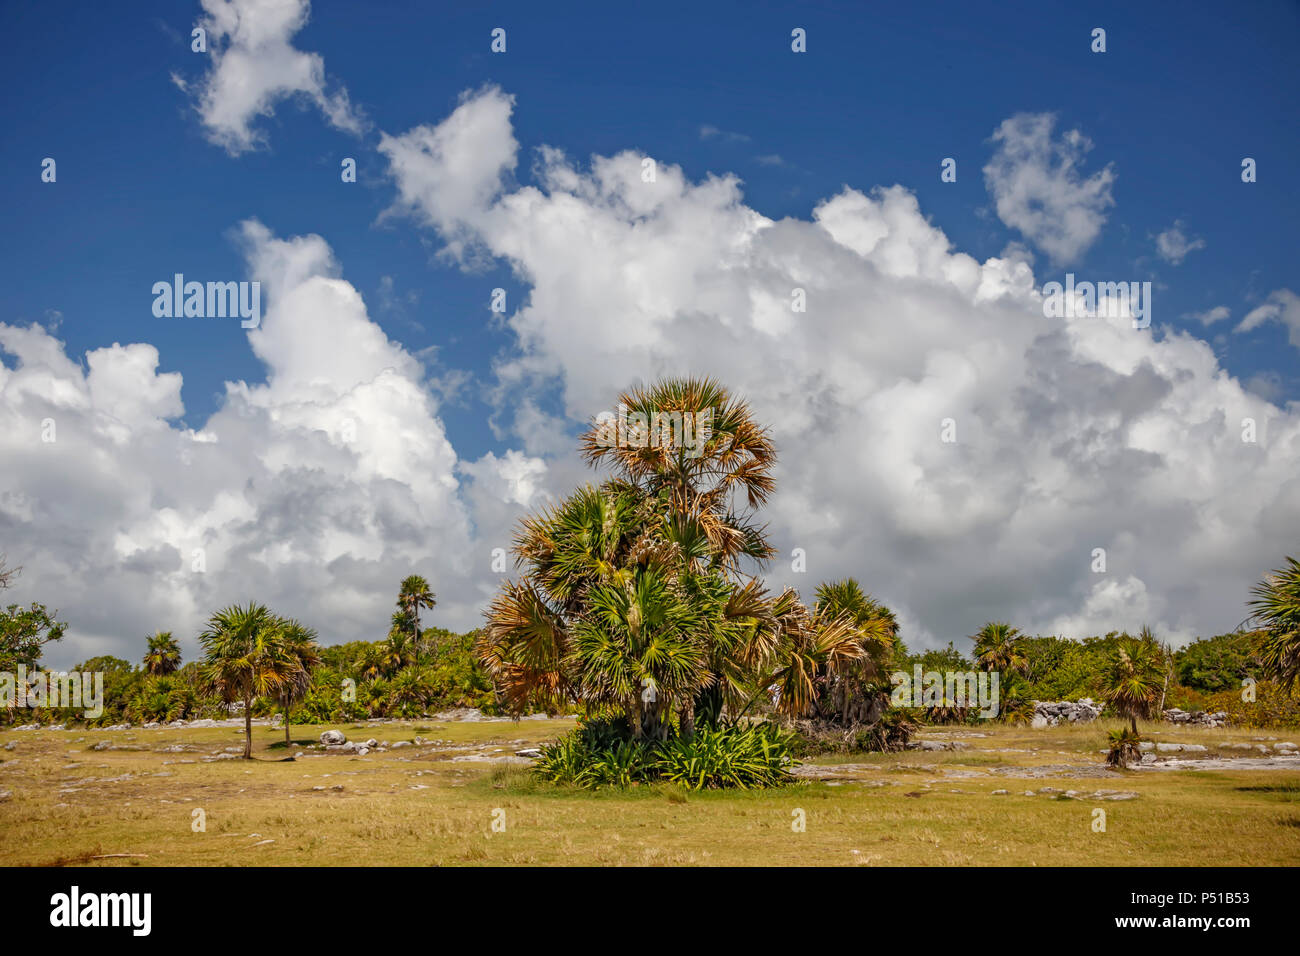 Palm trees against a blue sky with clouds - Stock Image